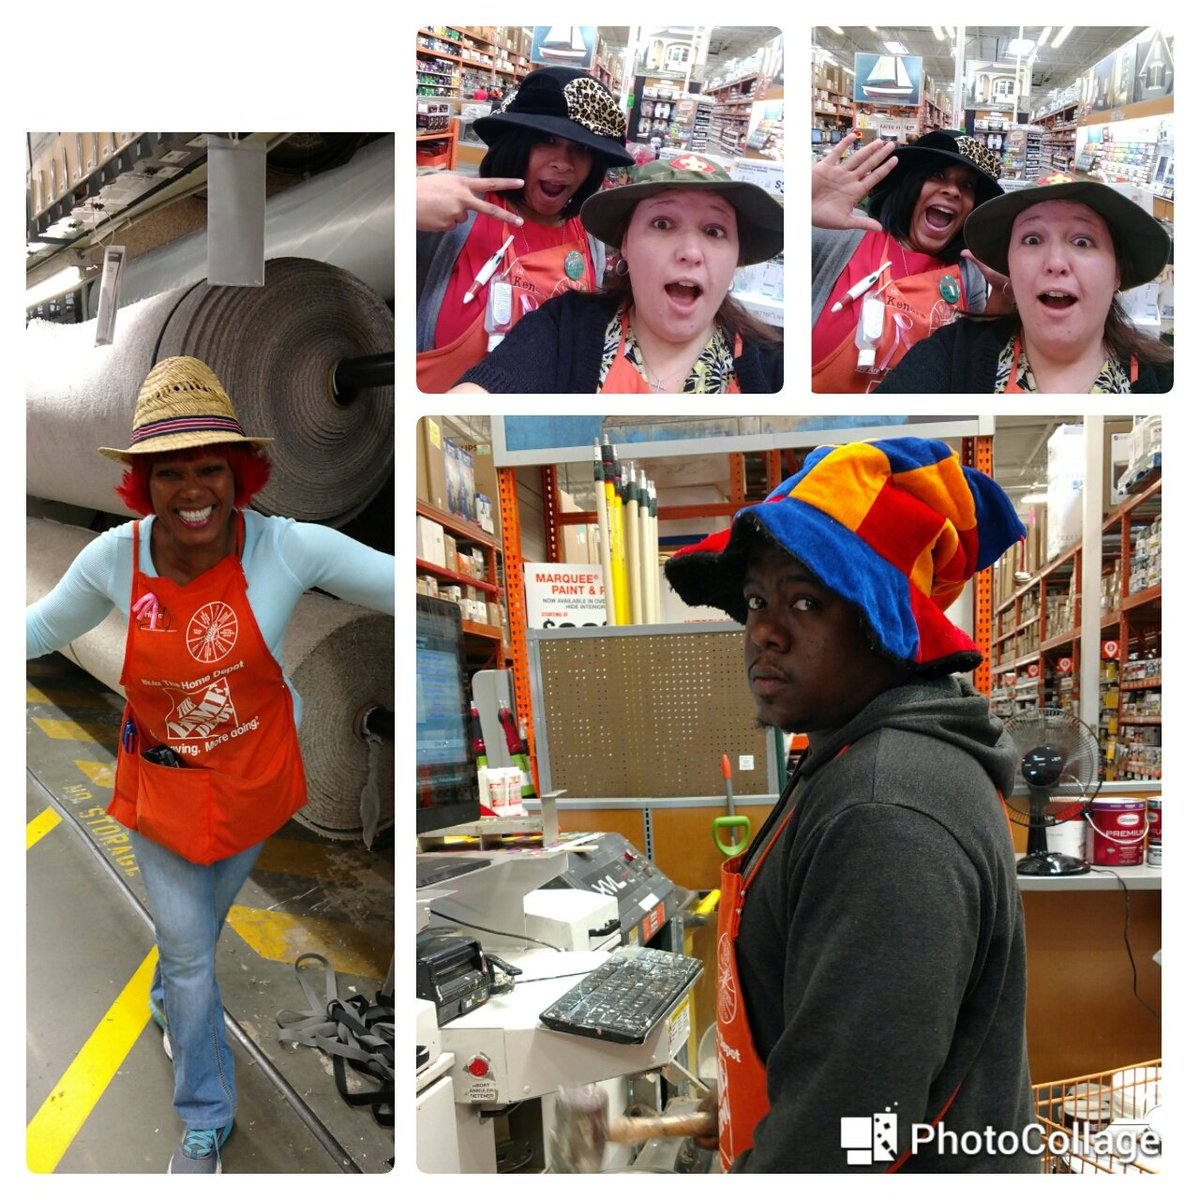 Another day of fun! Silly hat day @Conyers0128  @JPatton89 @jhiltonthd @TheFoodGirl1